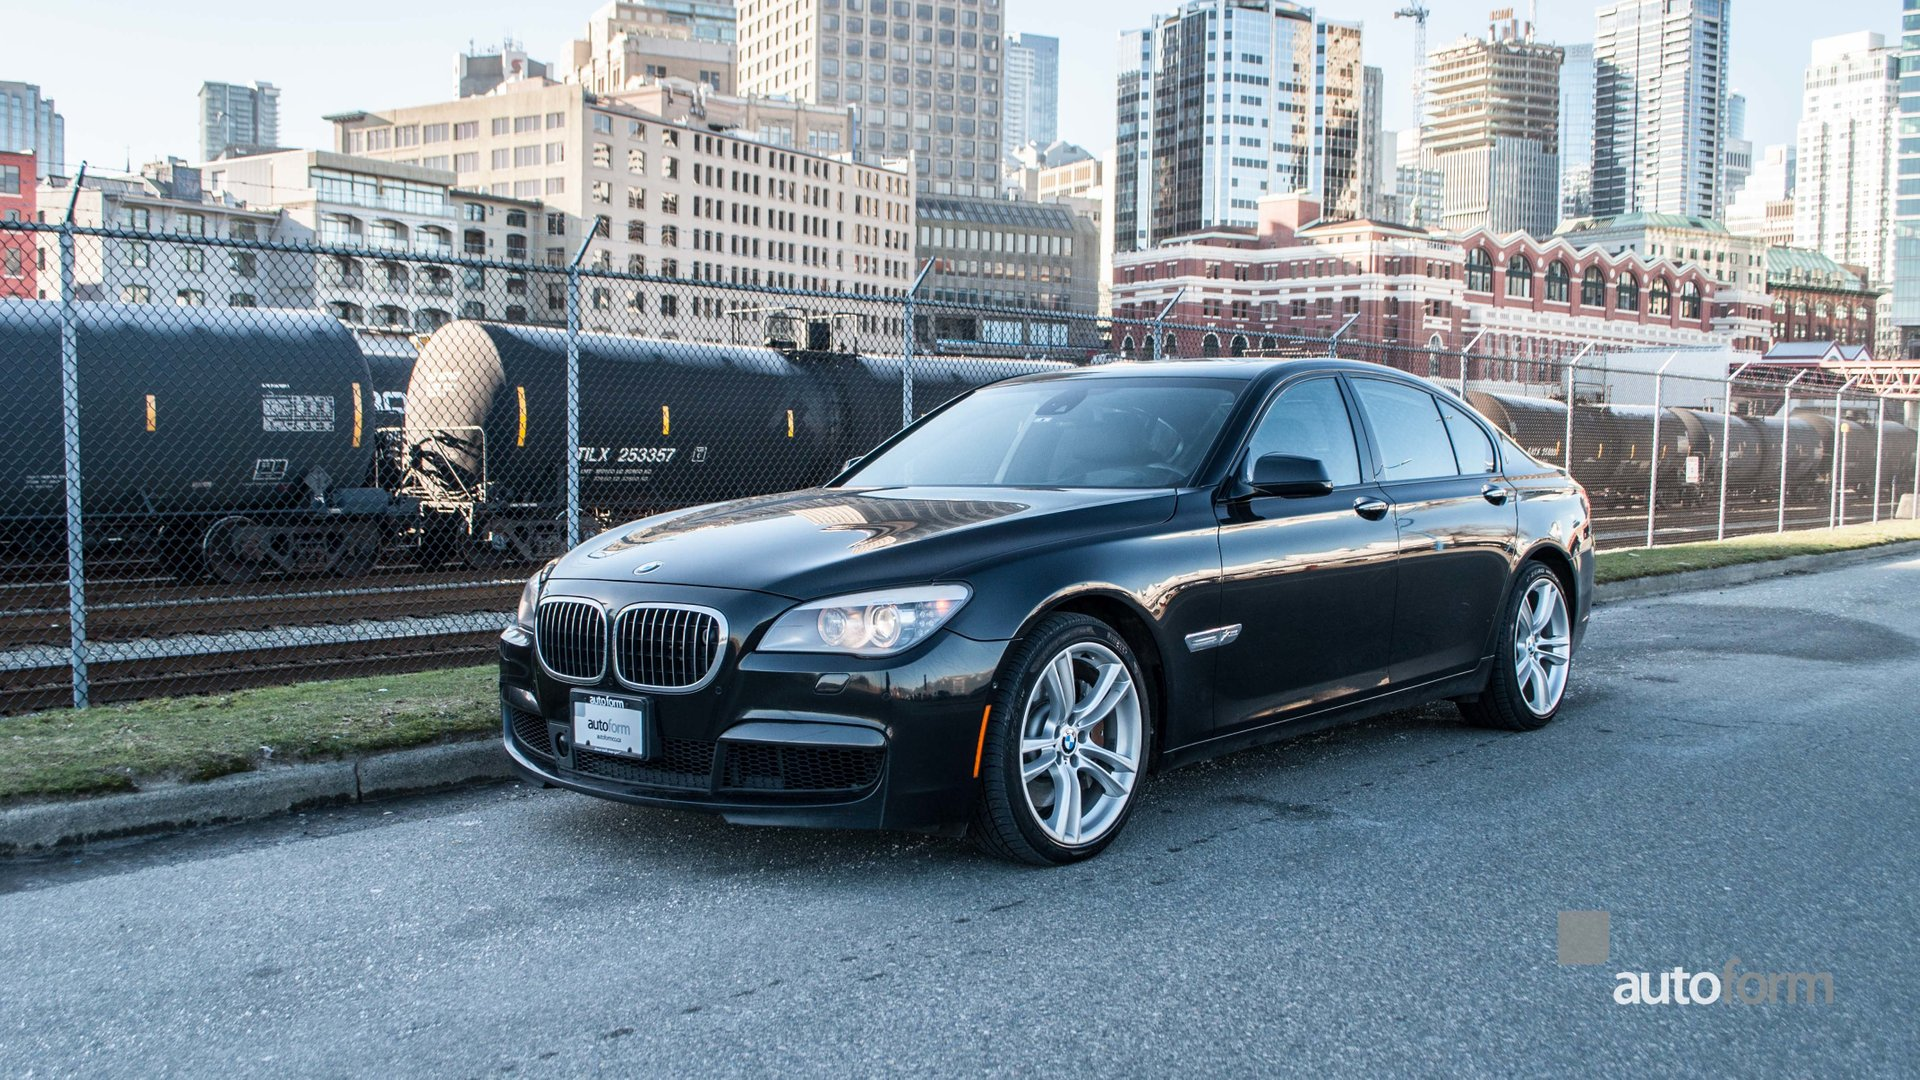 2010 bmw 750i xdrive msport with lane guidance